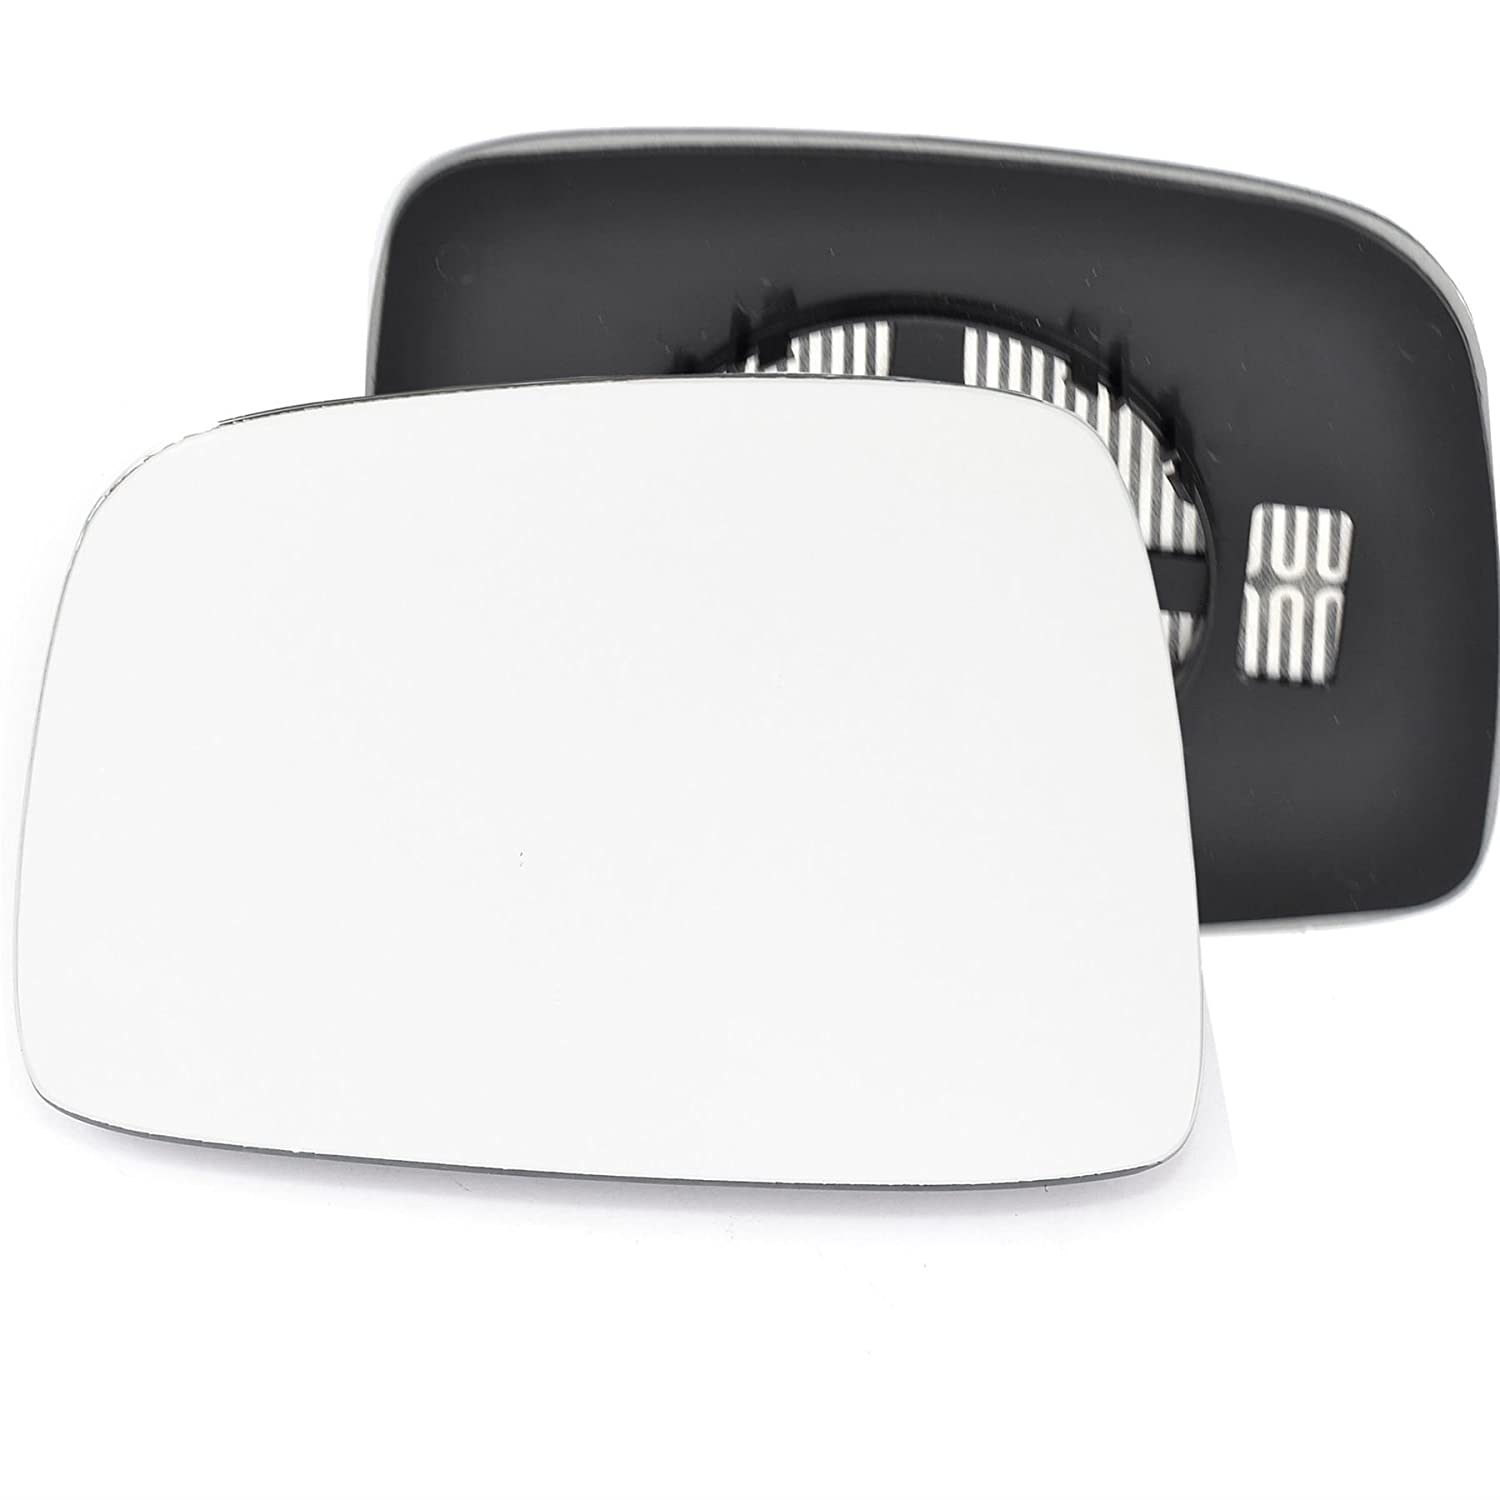 Passenger left hand side Heated wing door Silver mirror glass with backing plate #C-SHY/L-JPCE01 [Clip On] Sylgab